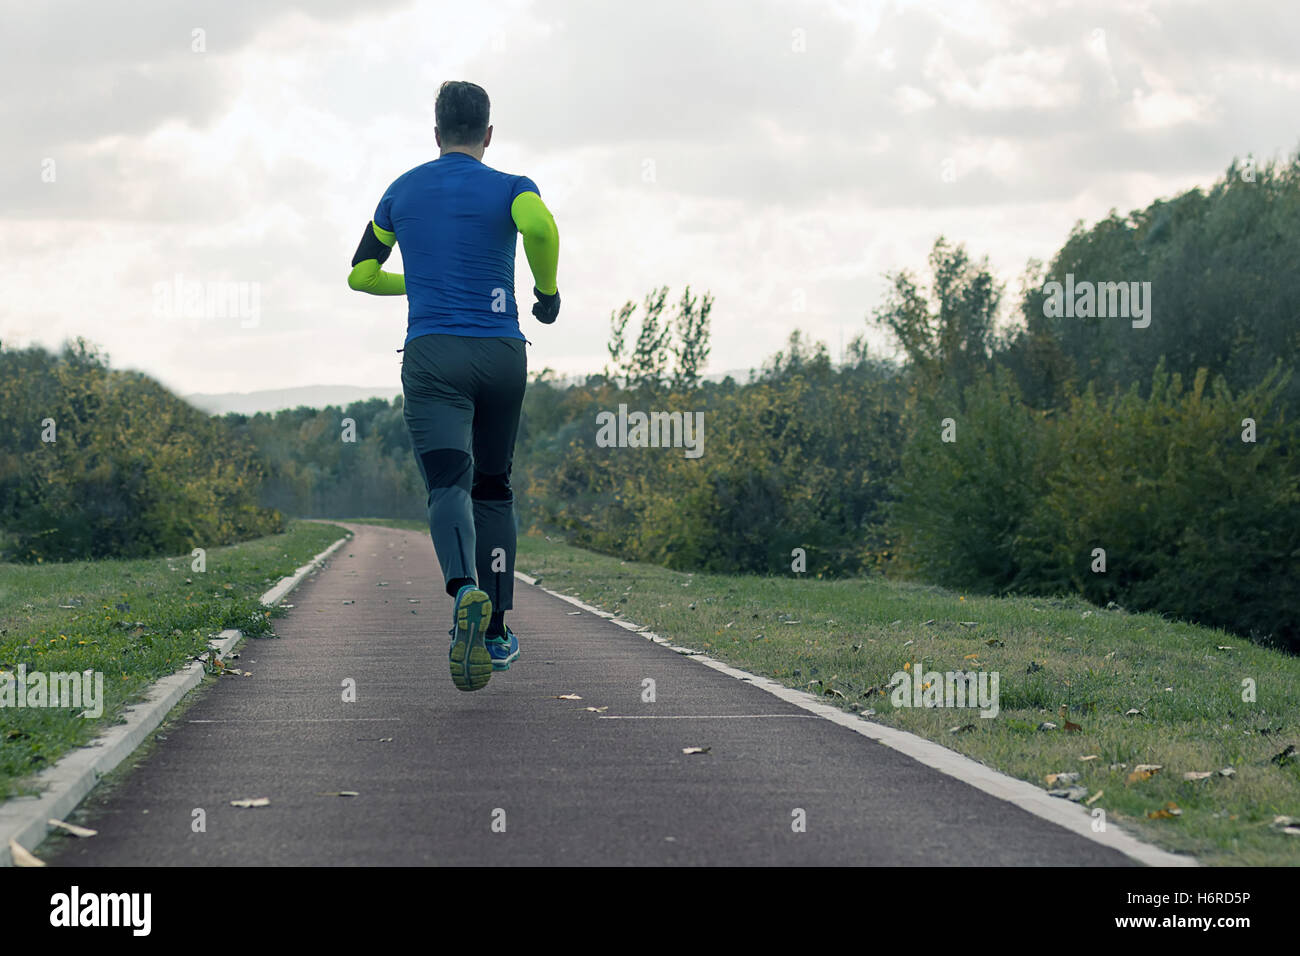 Jogging in the park. Young man in sports clothing jogging in park - Stock Image